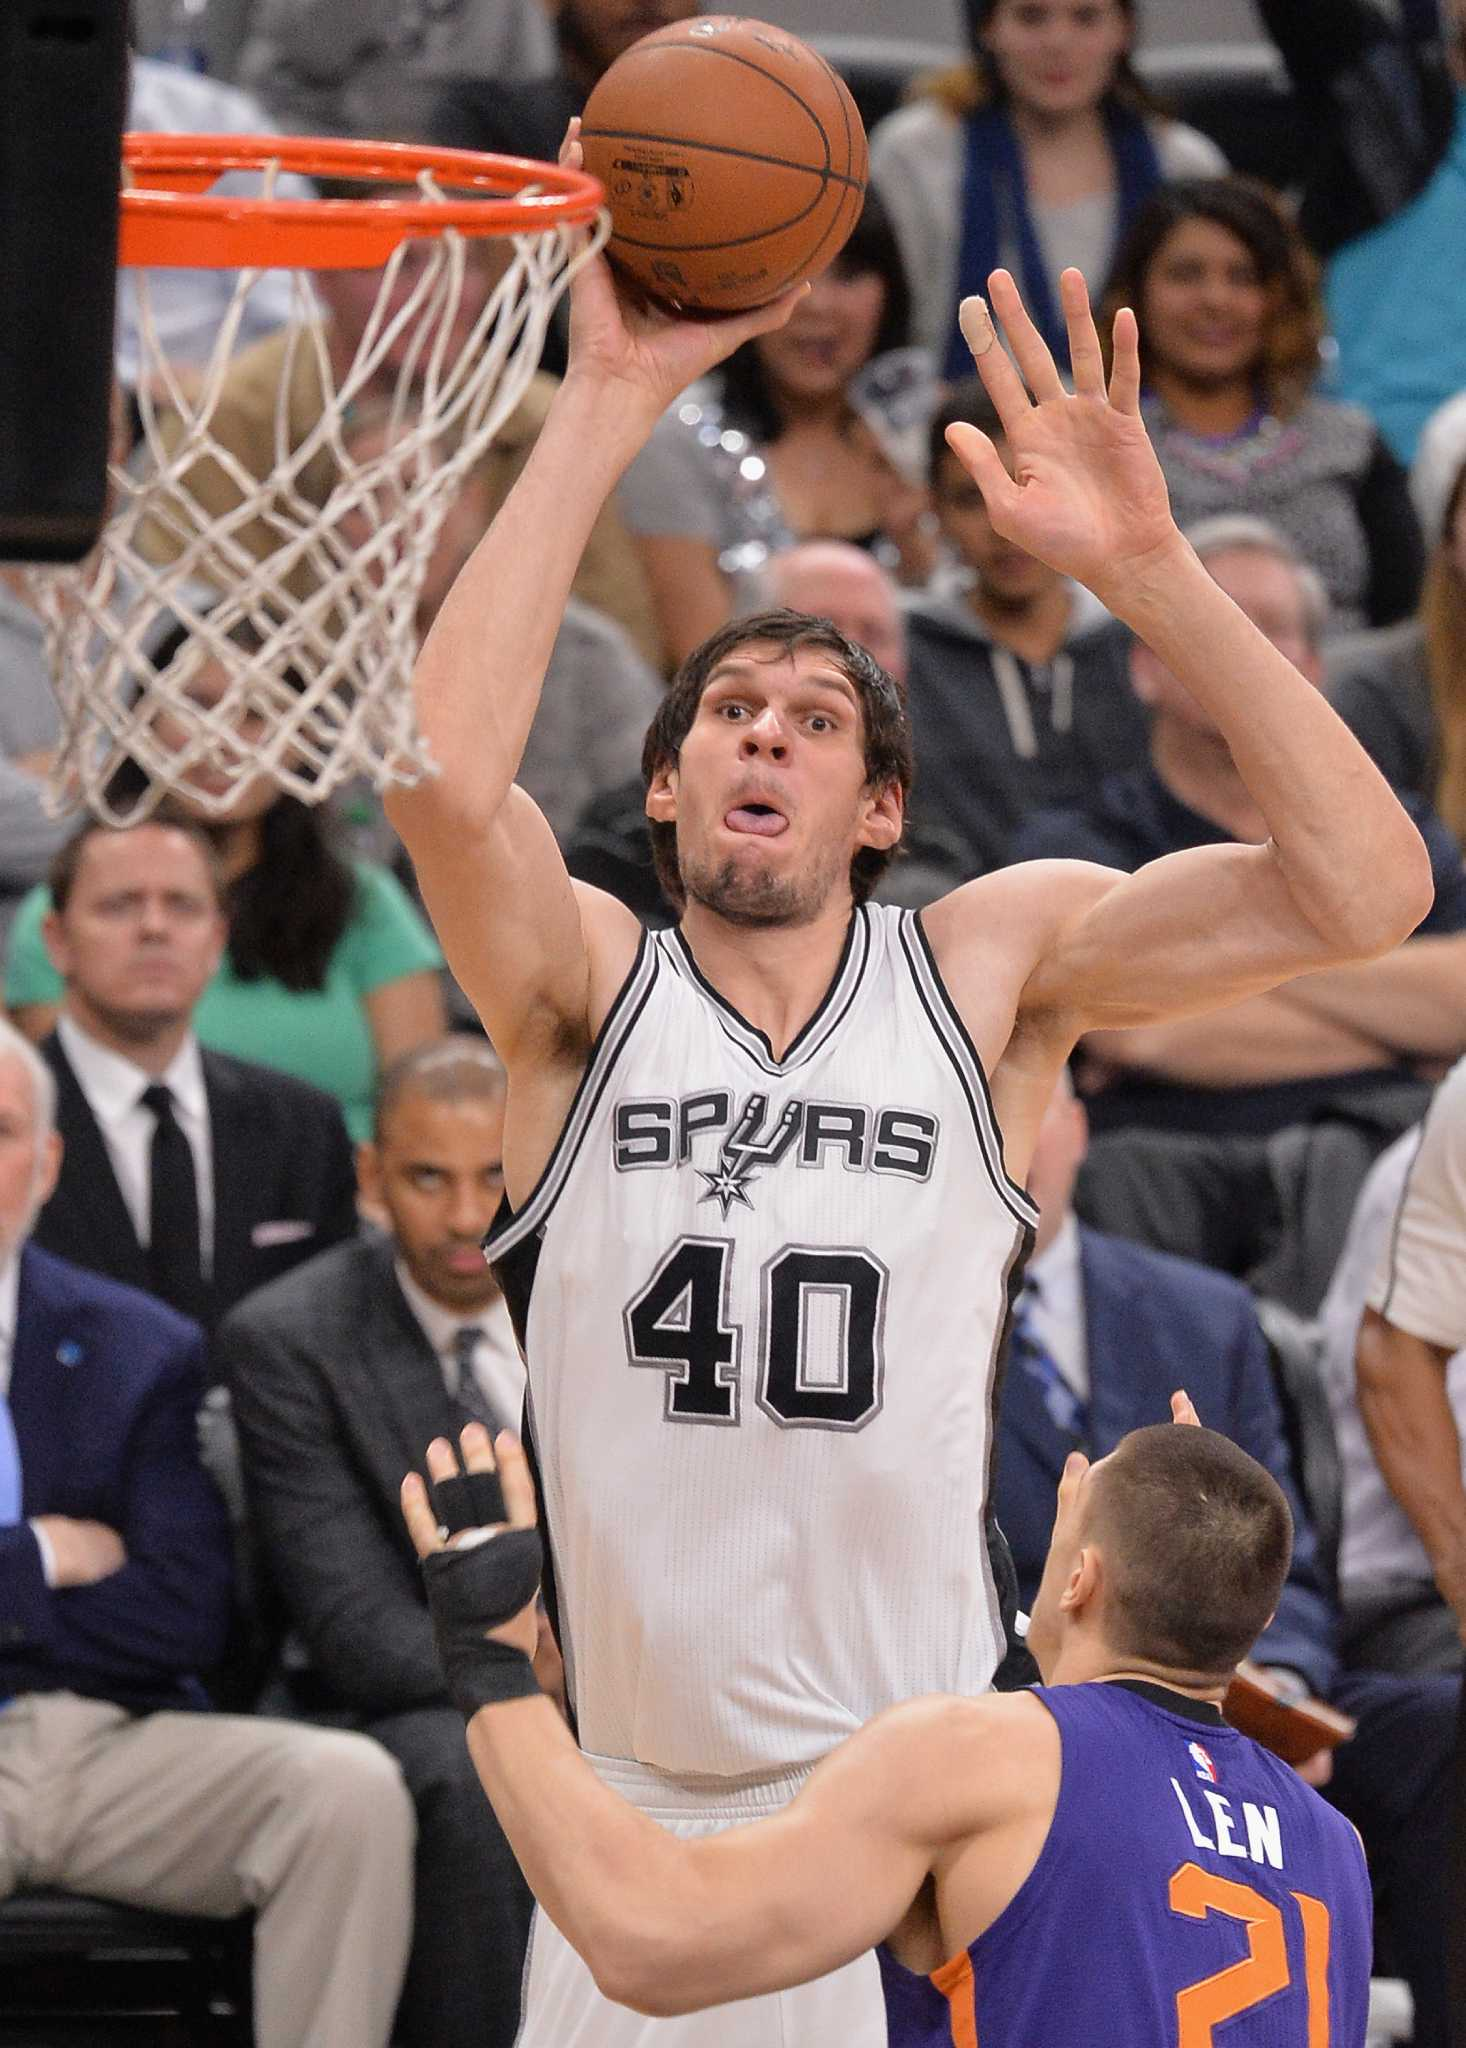 Spurs Boban Marjanovic Says Support Of San Antonio Fans Gives Him